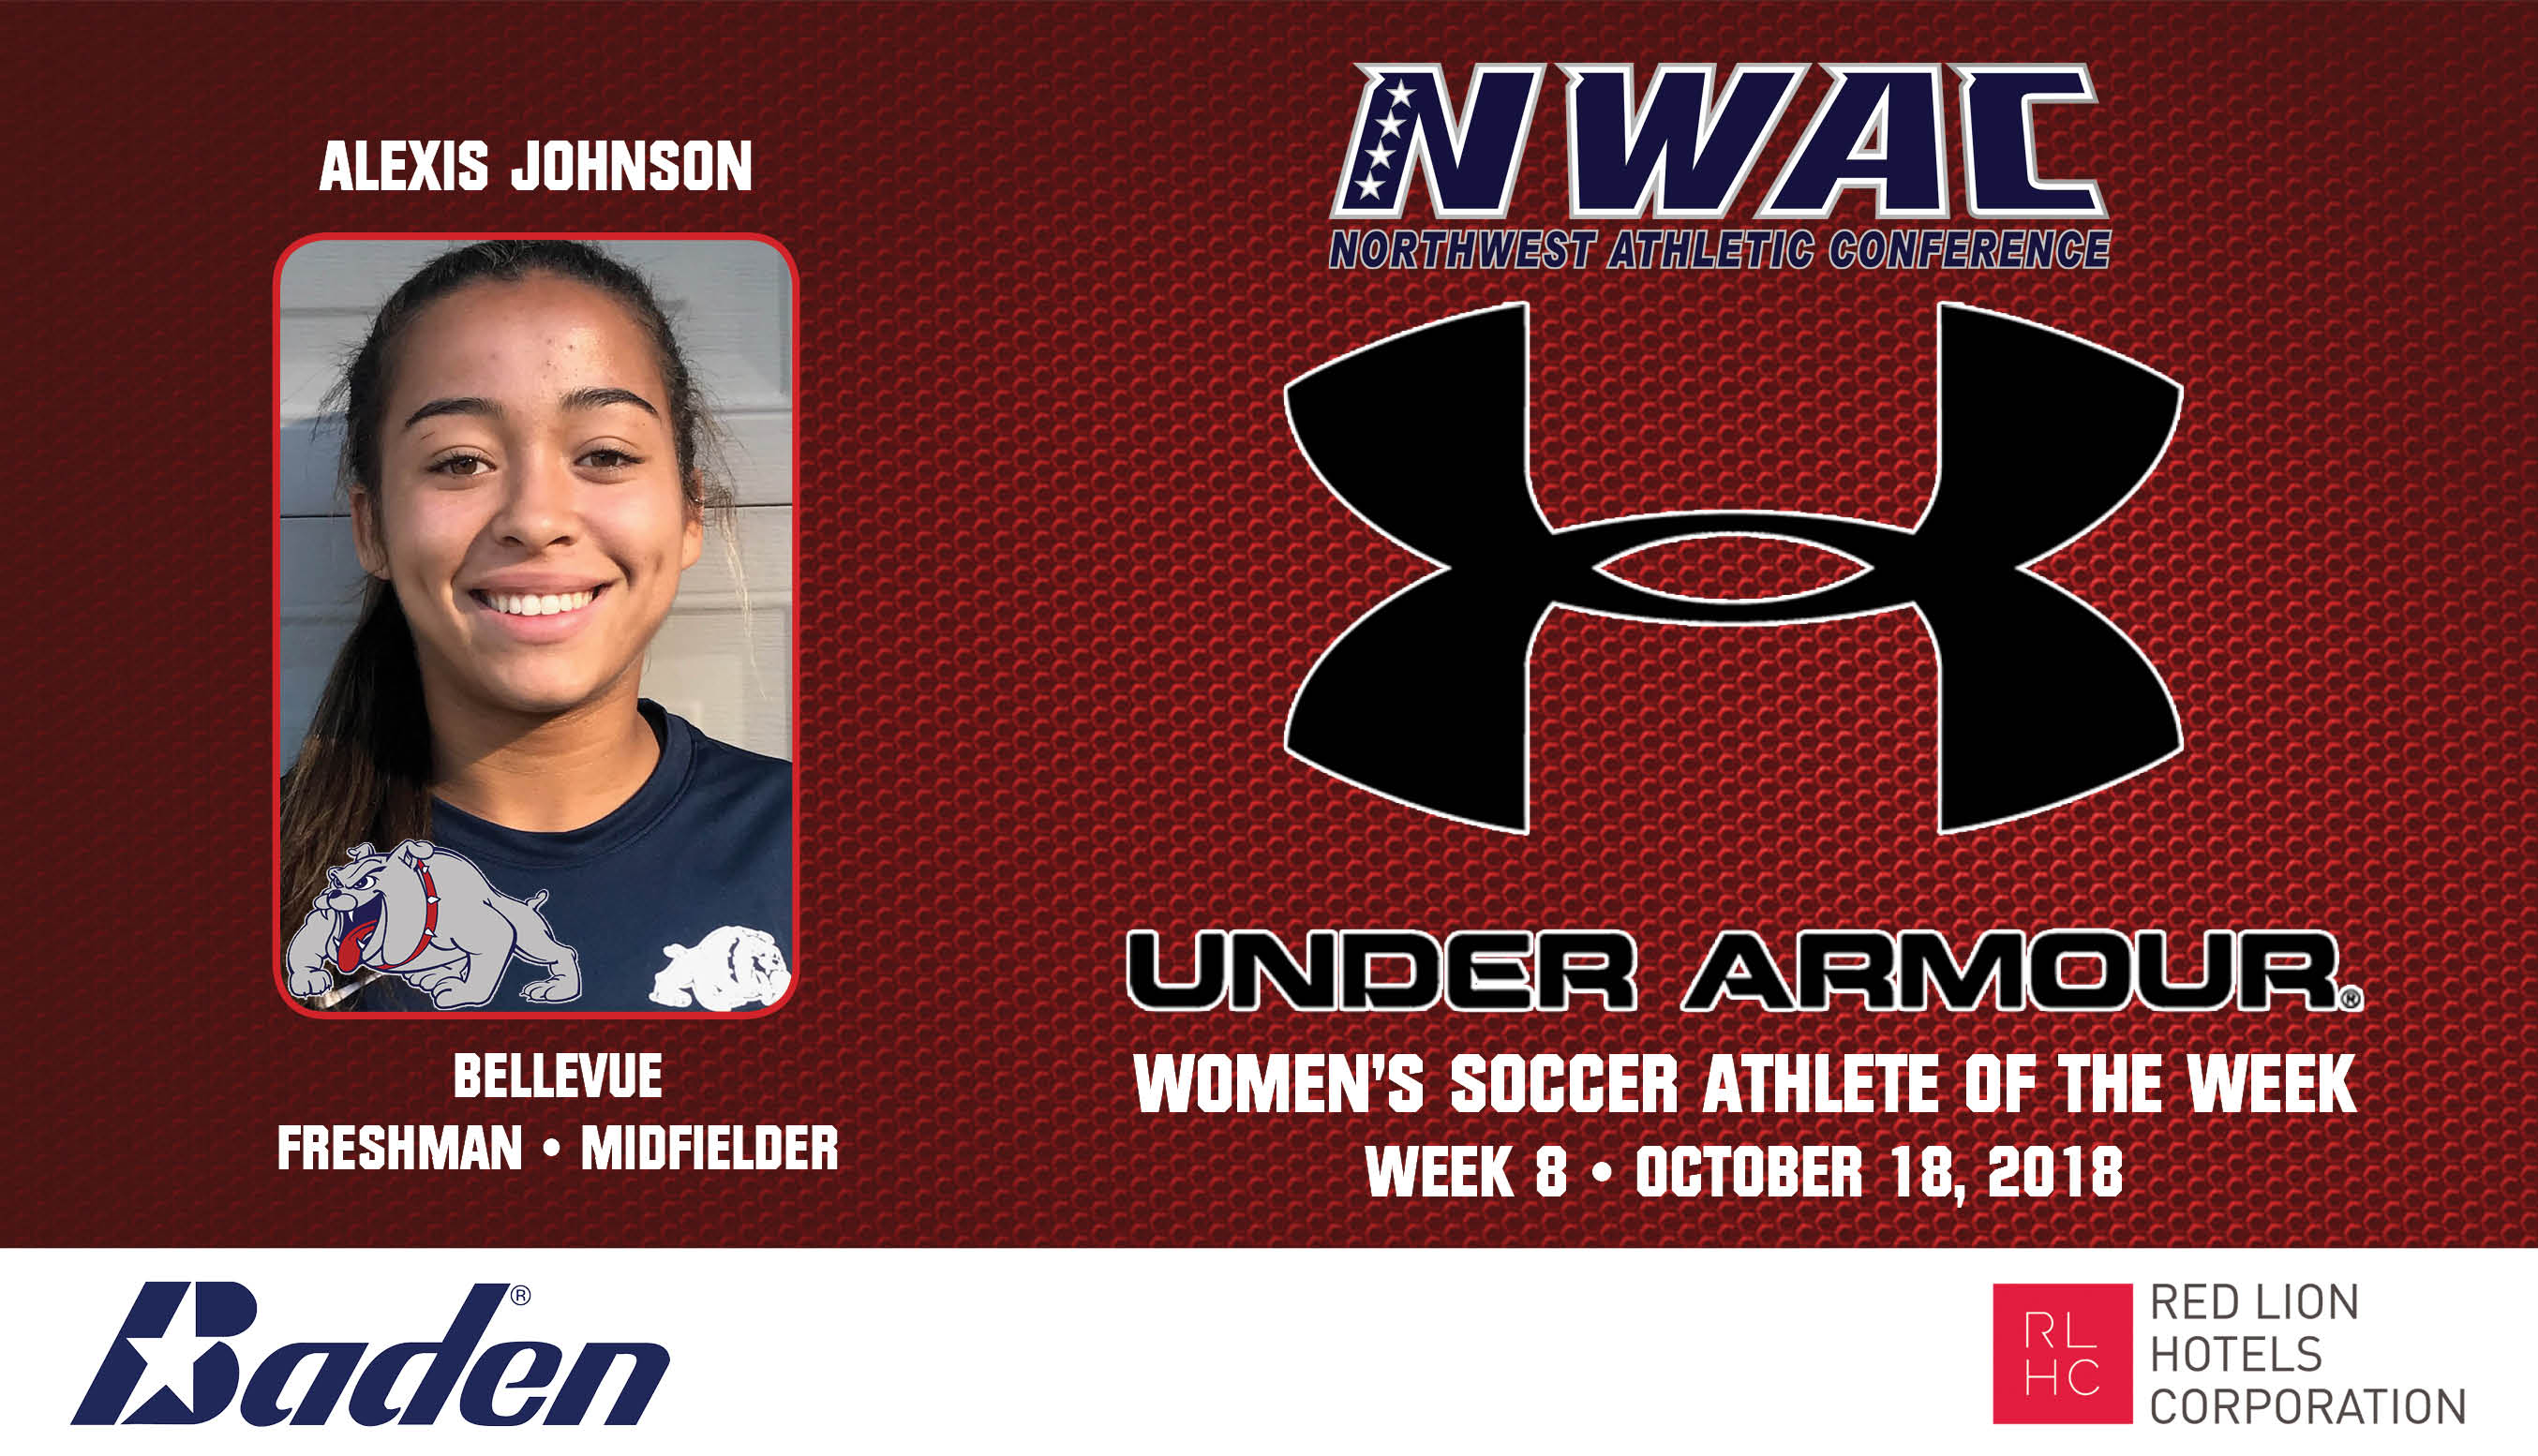 Alexis Johnson Armour Player of the Week graphic